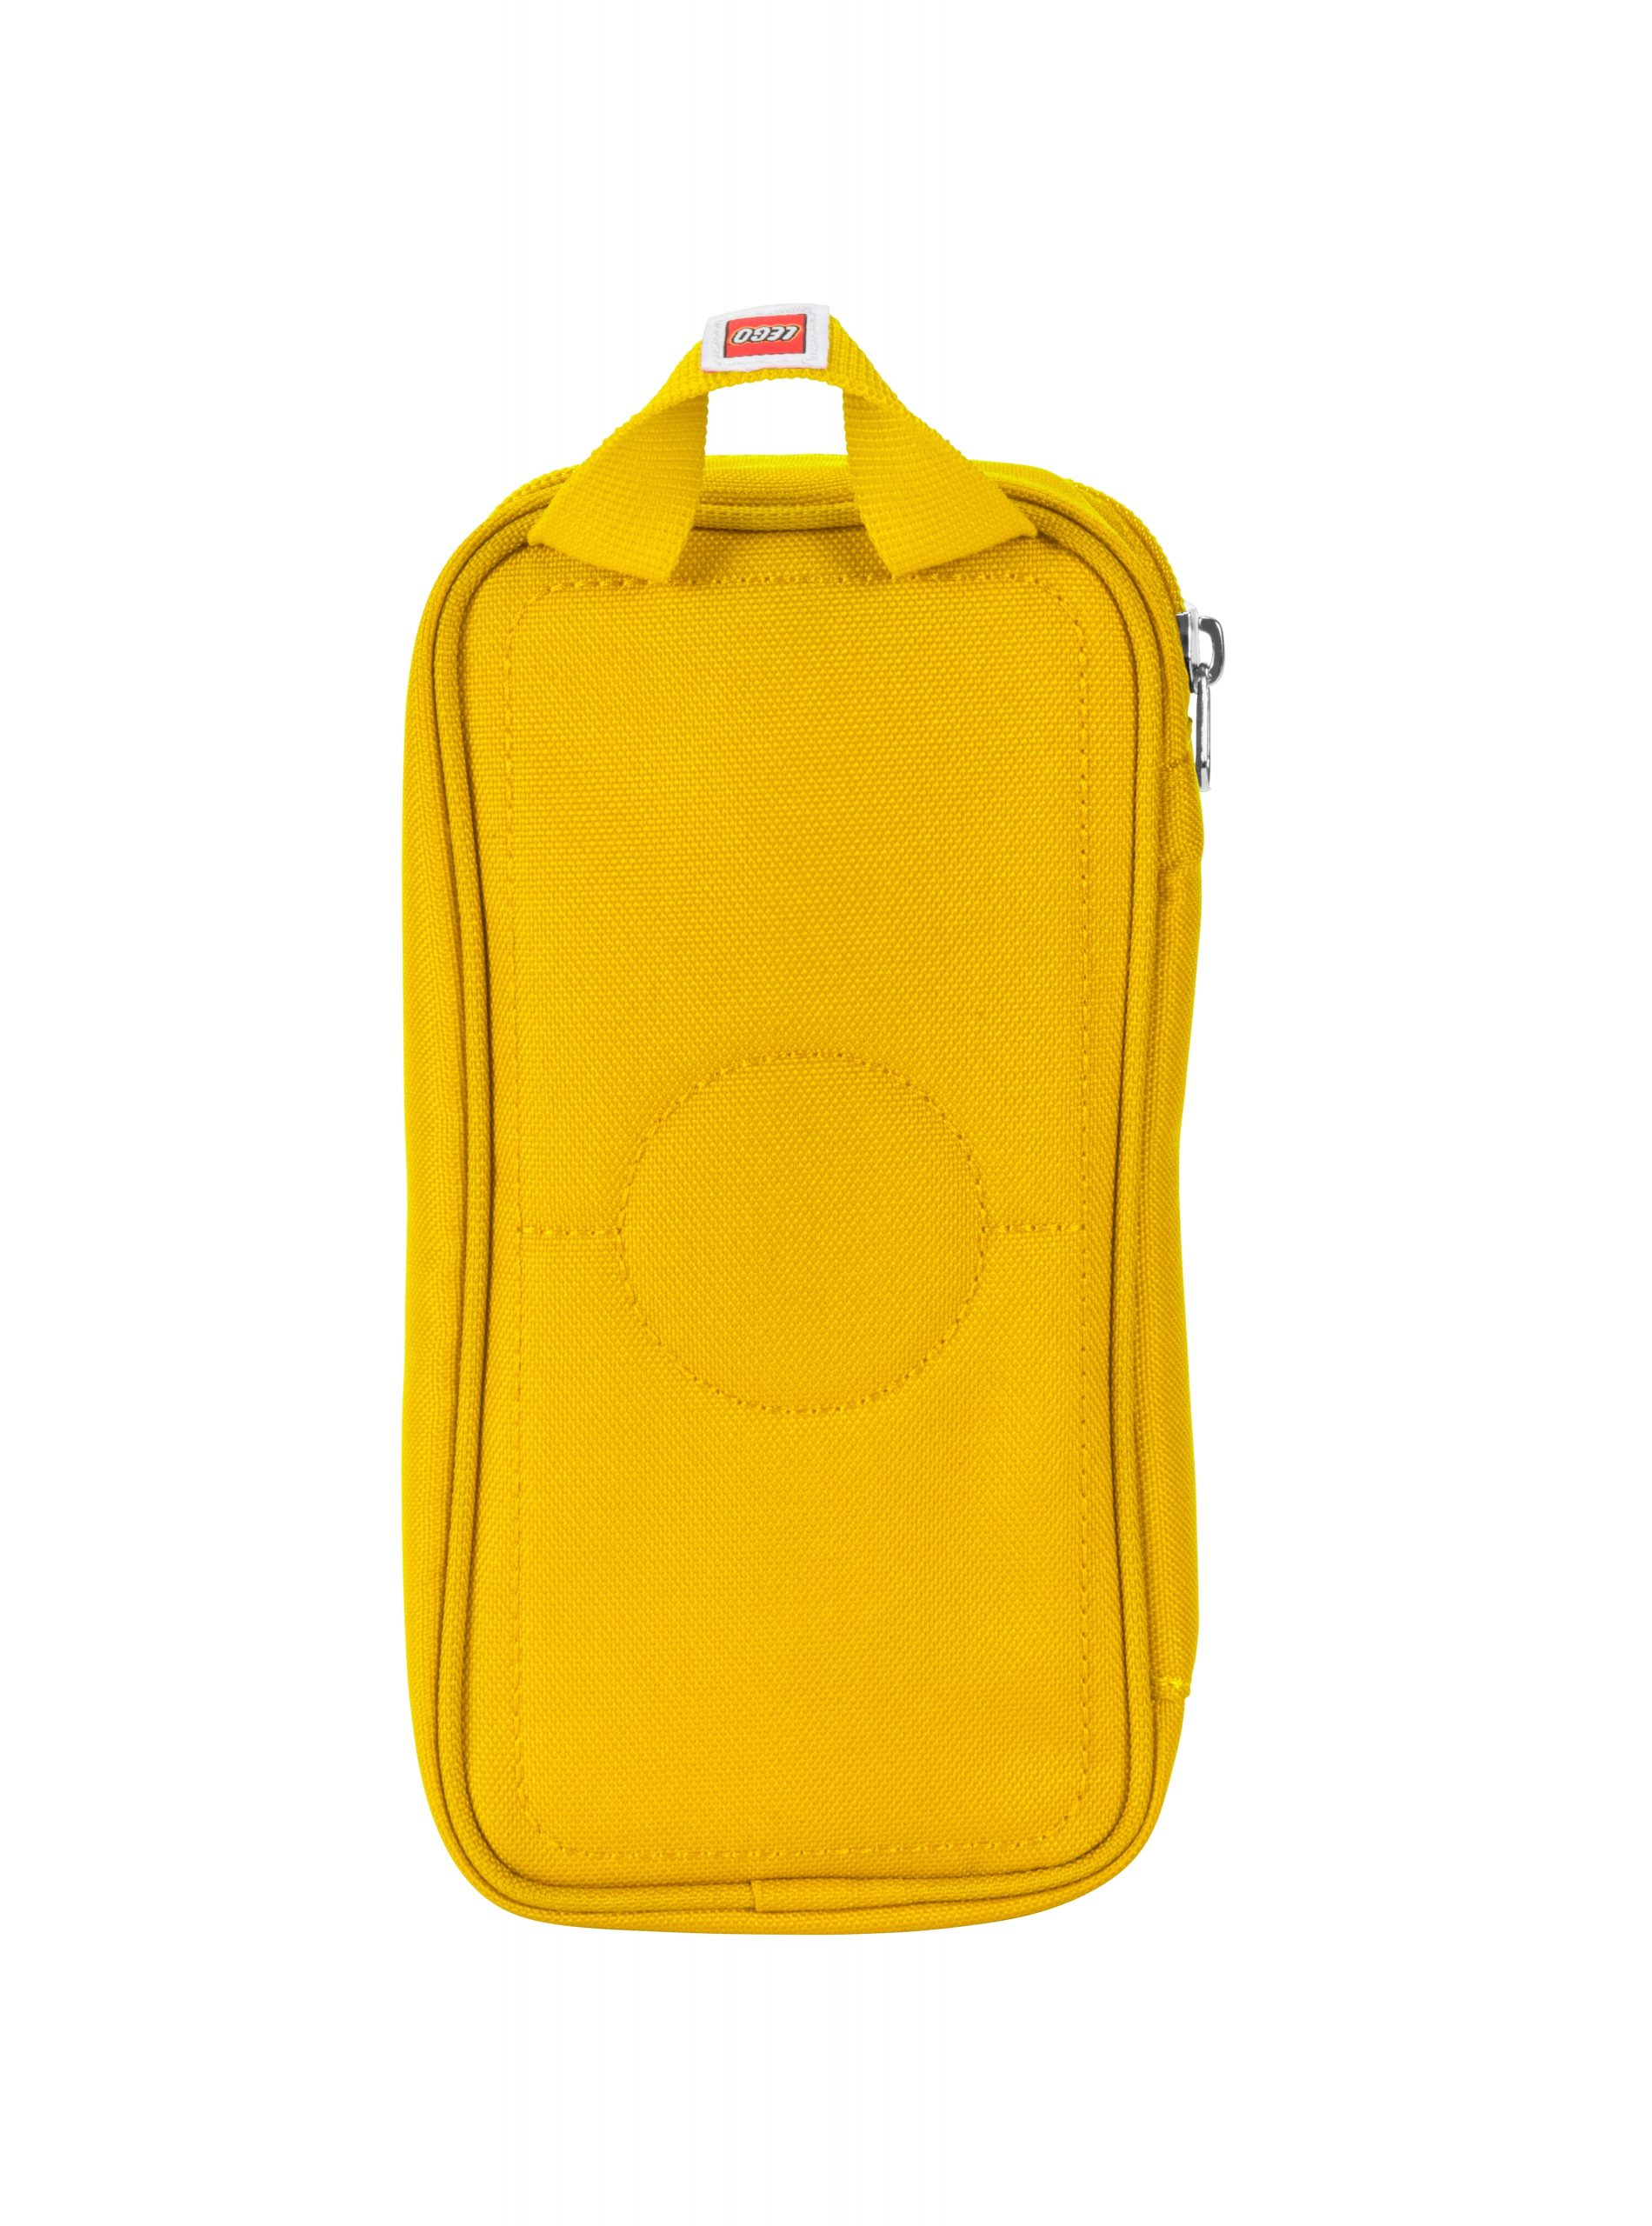 lego 5005539 brick pouch yellow scaled